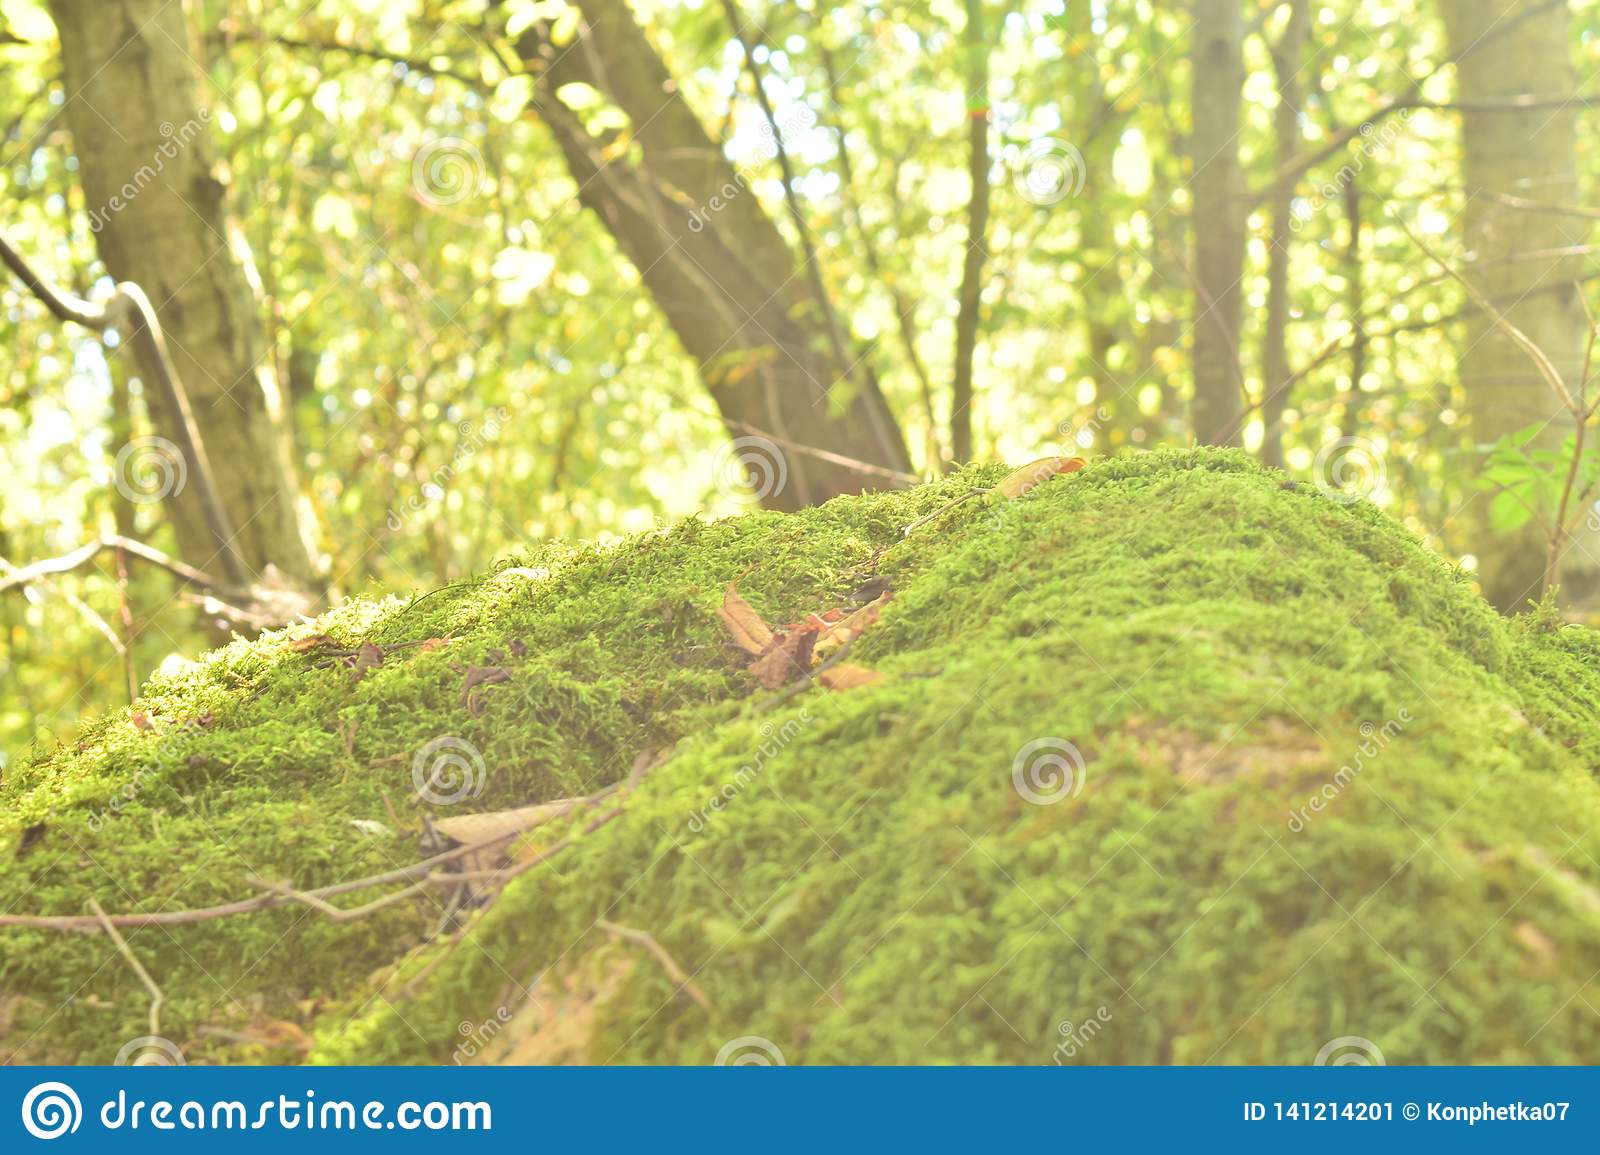 Grassy knoll in the forest